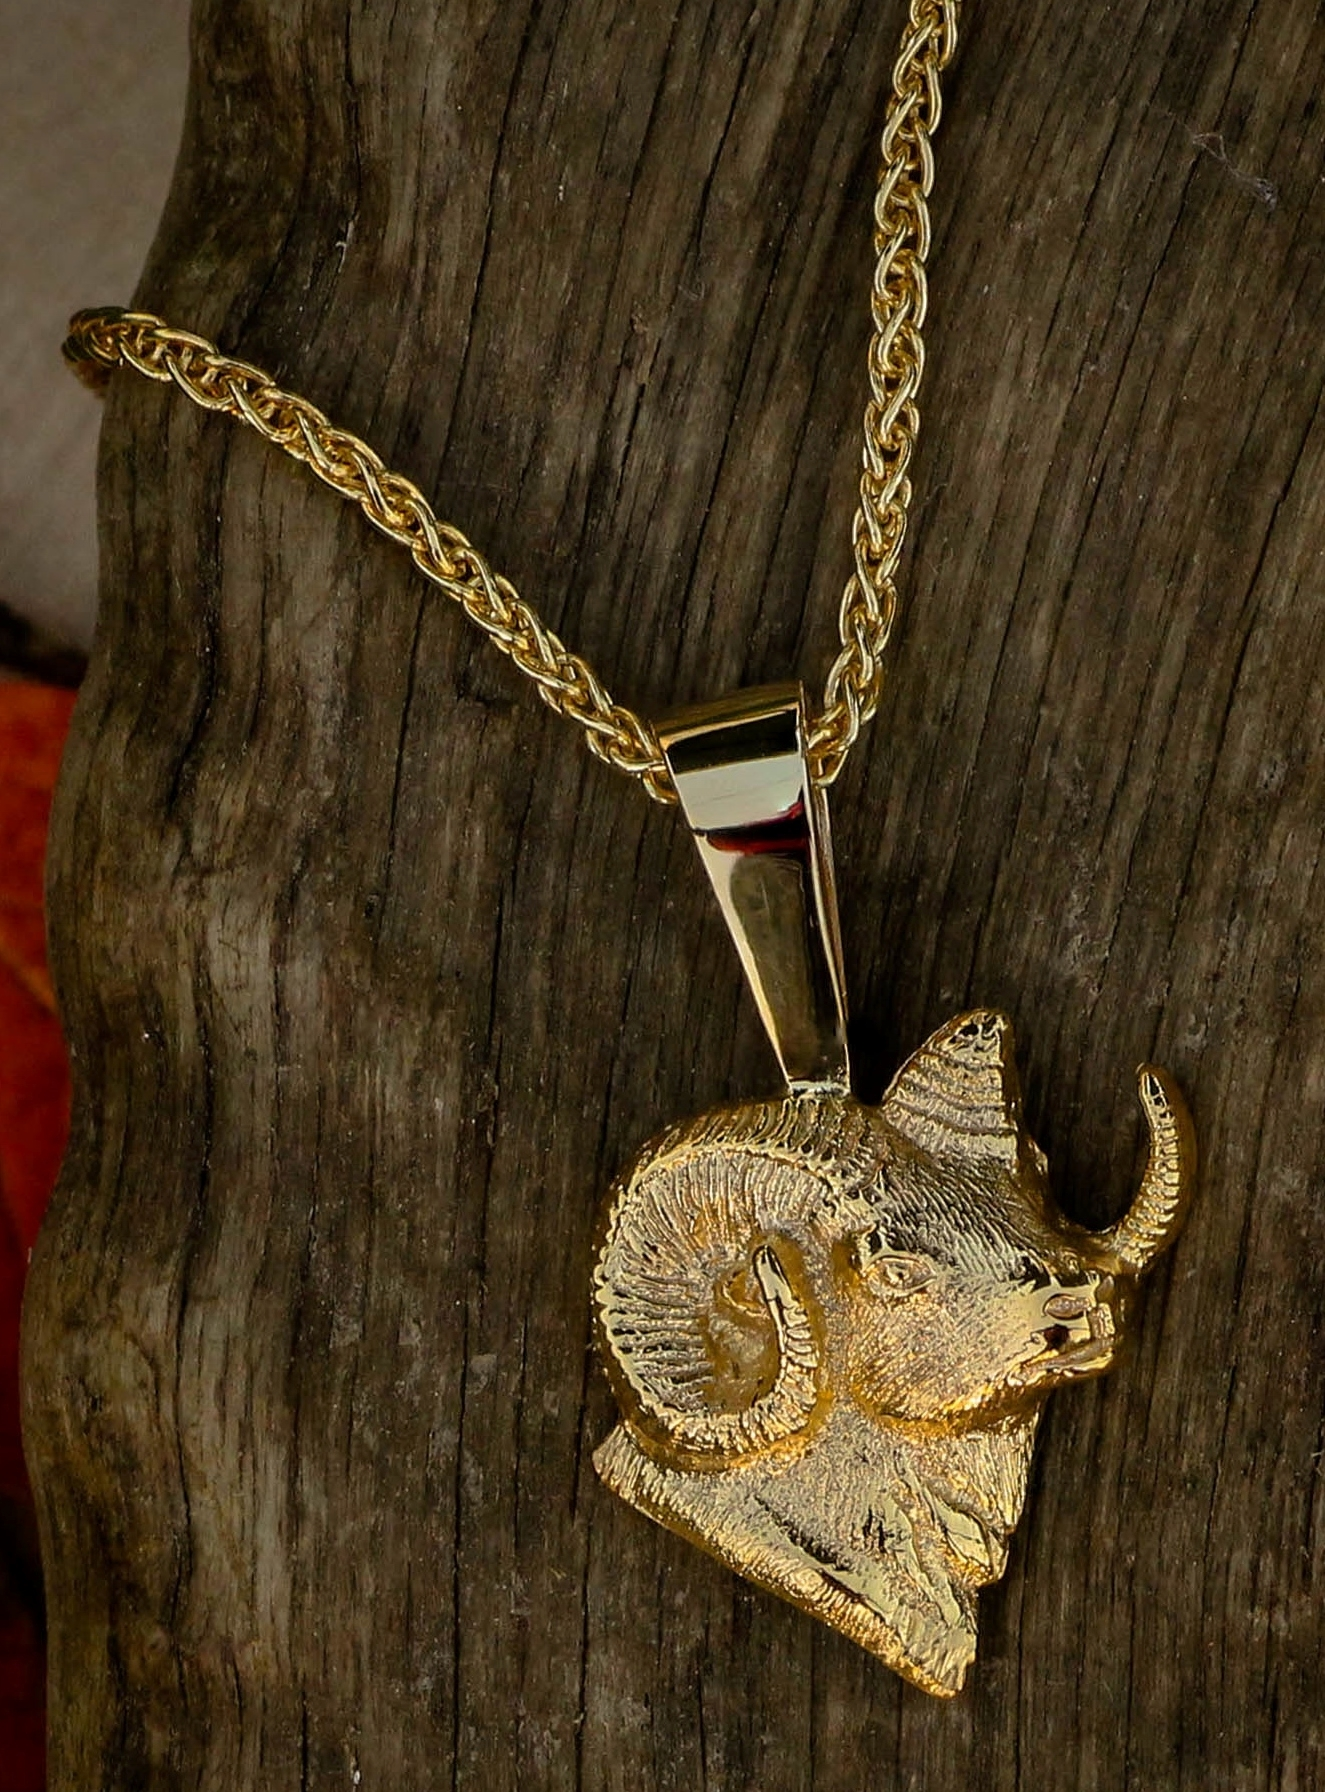 Ram Pendant in 14 kt yellow gold